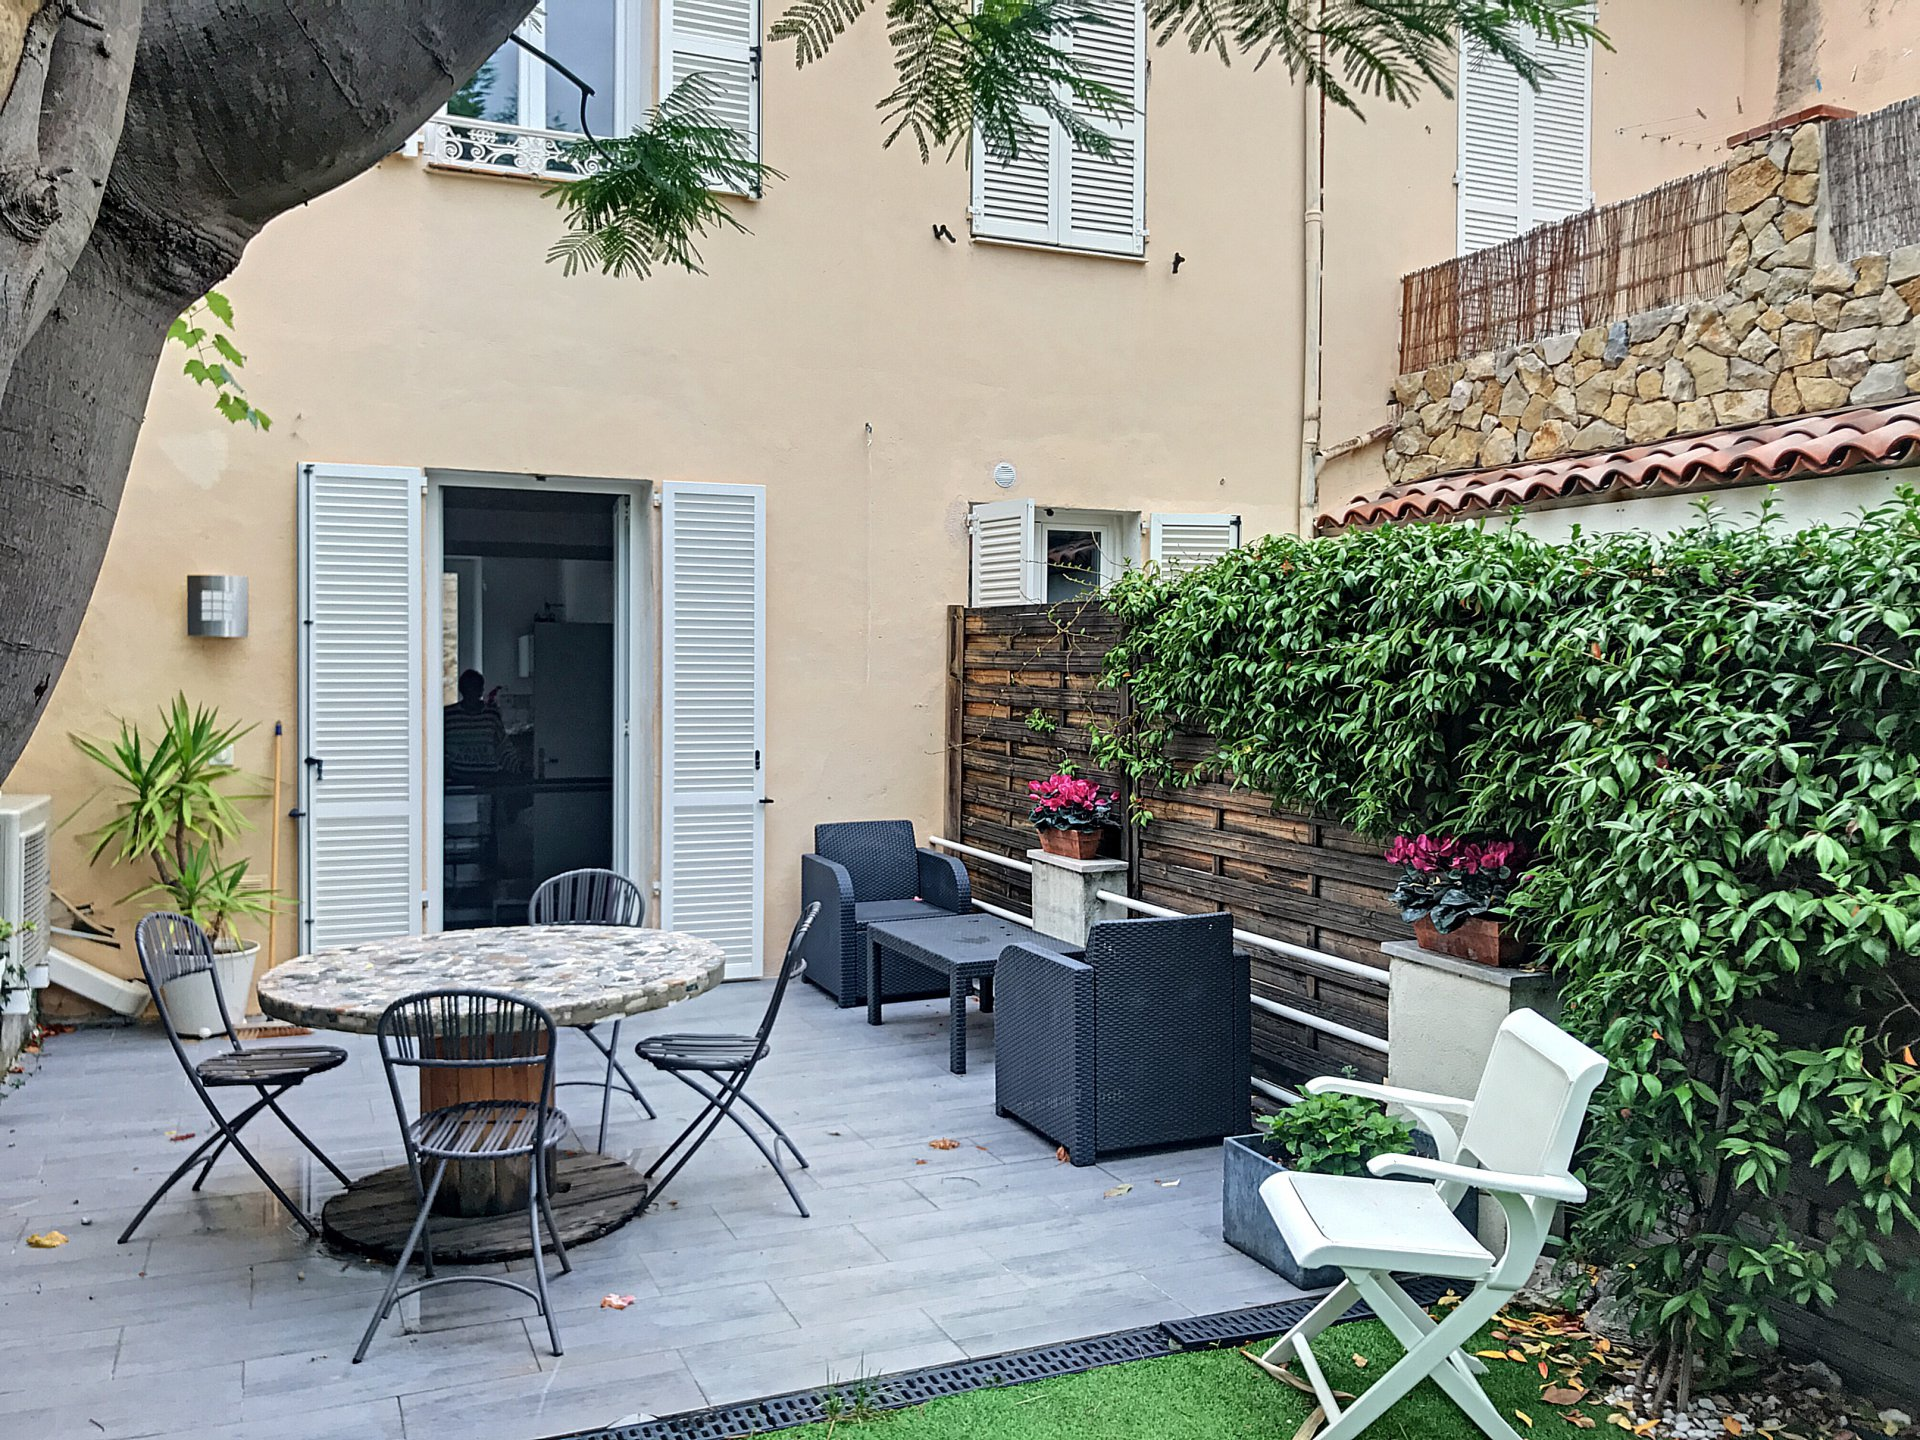 Cannes  Stanislas, 2 bedrooms of 61 sqm ²